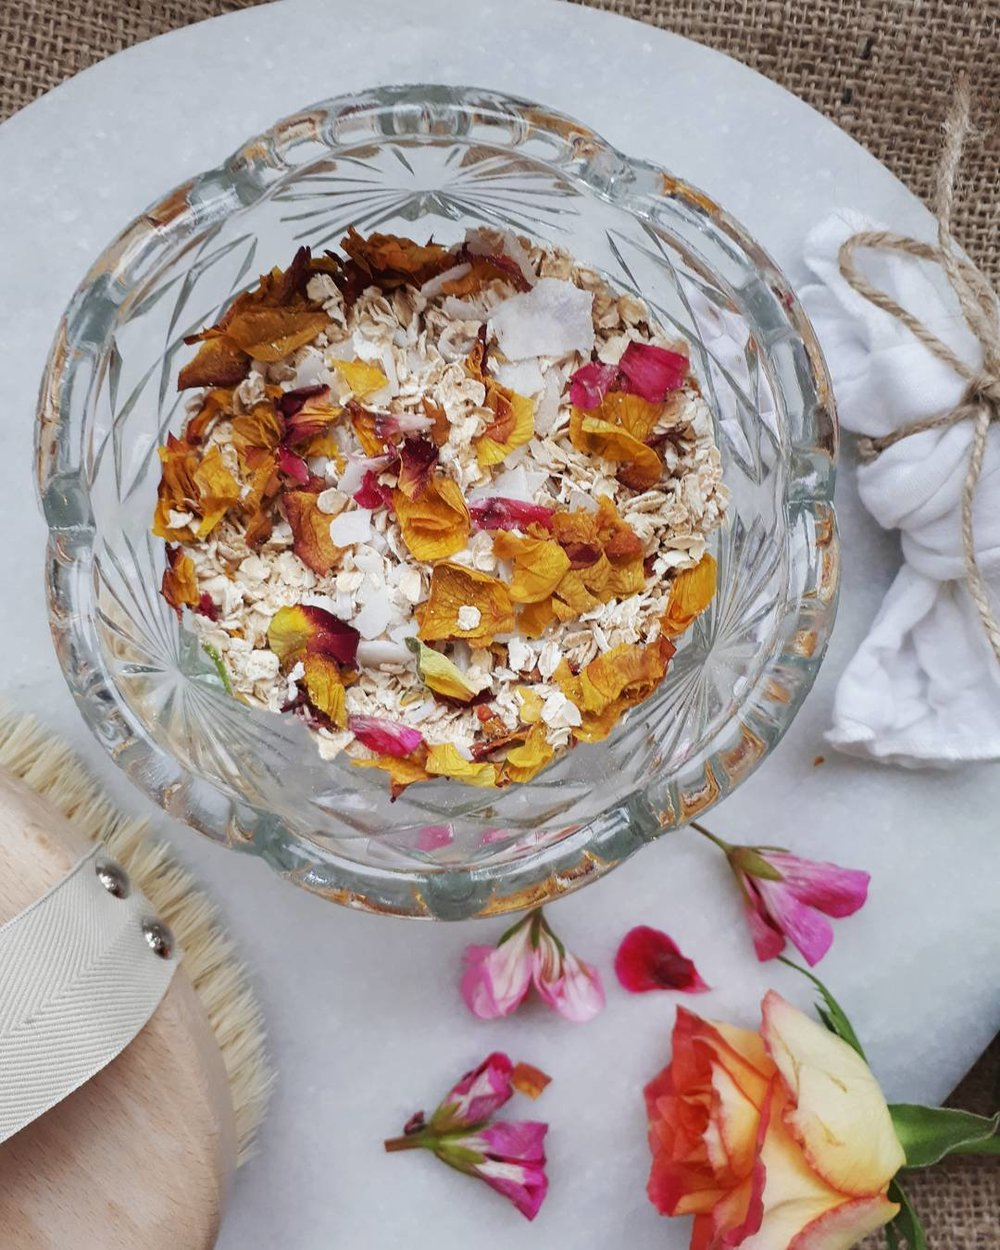 A beautiful rose petal bath soak with wholly natural ingredients